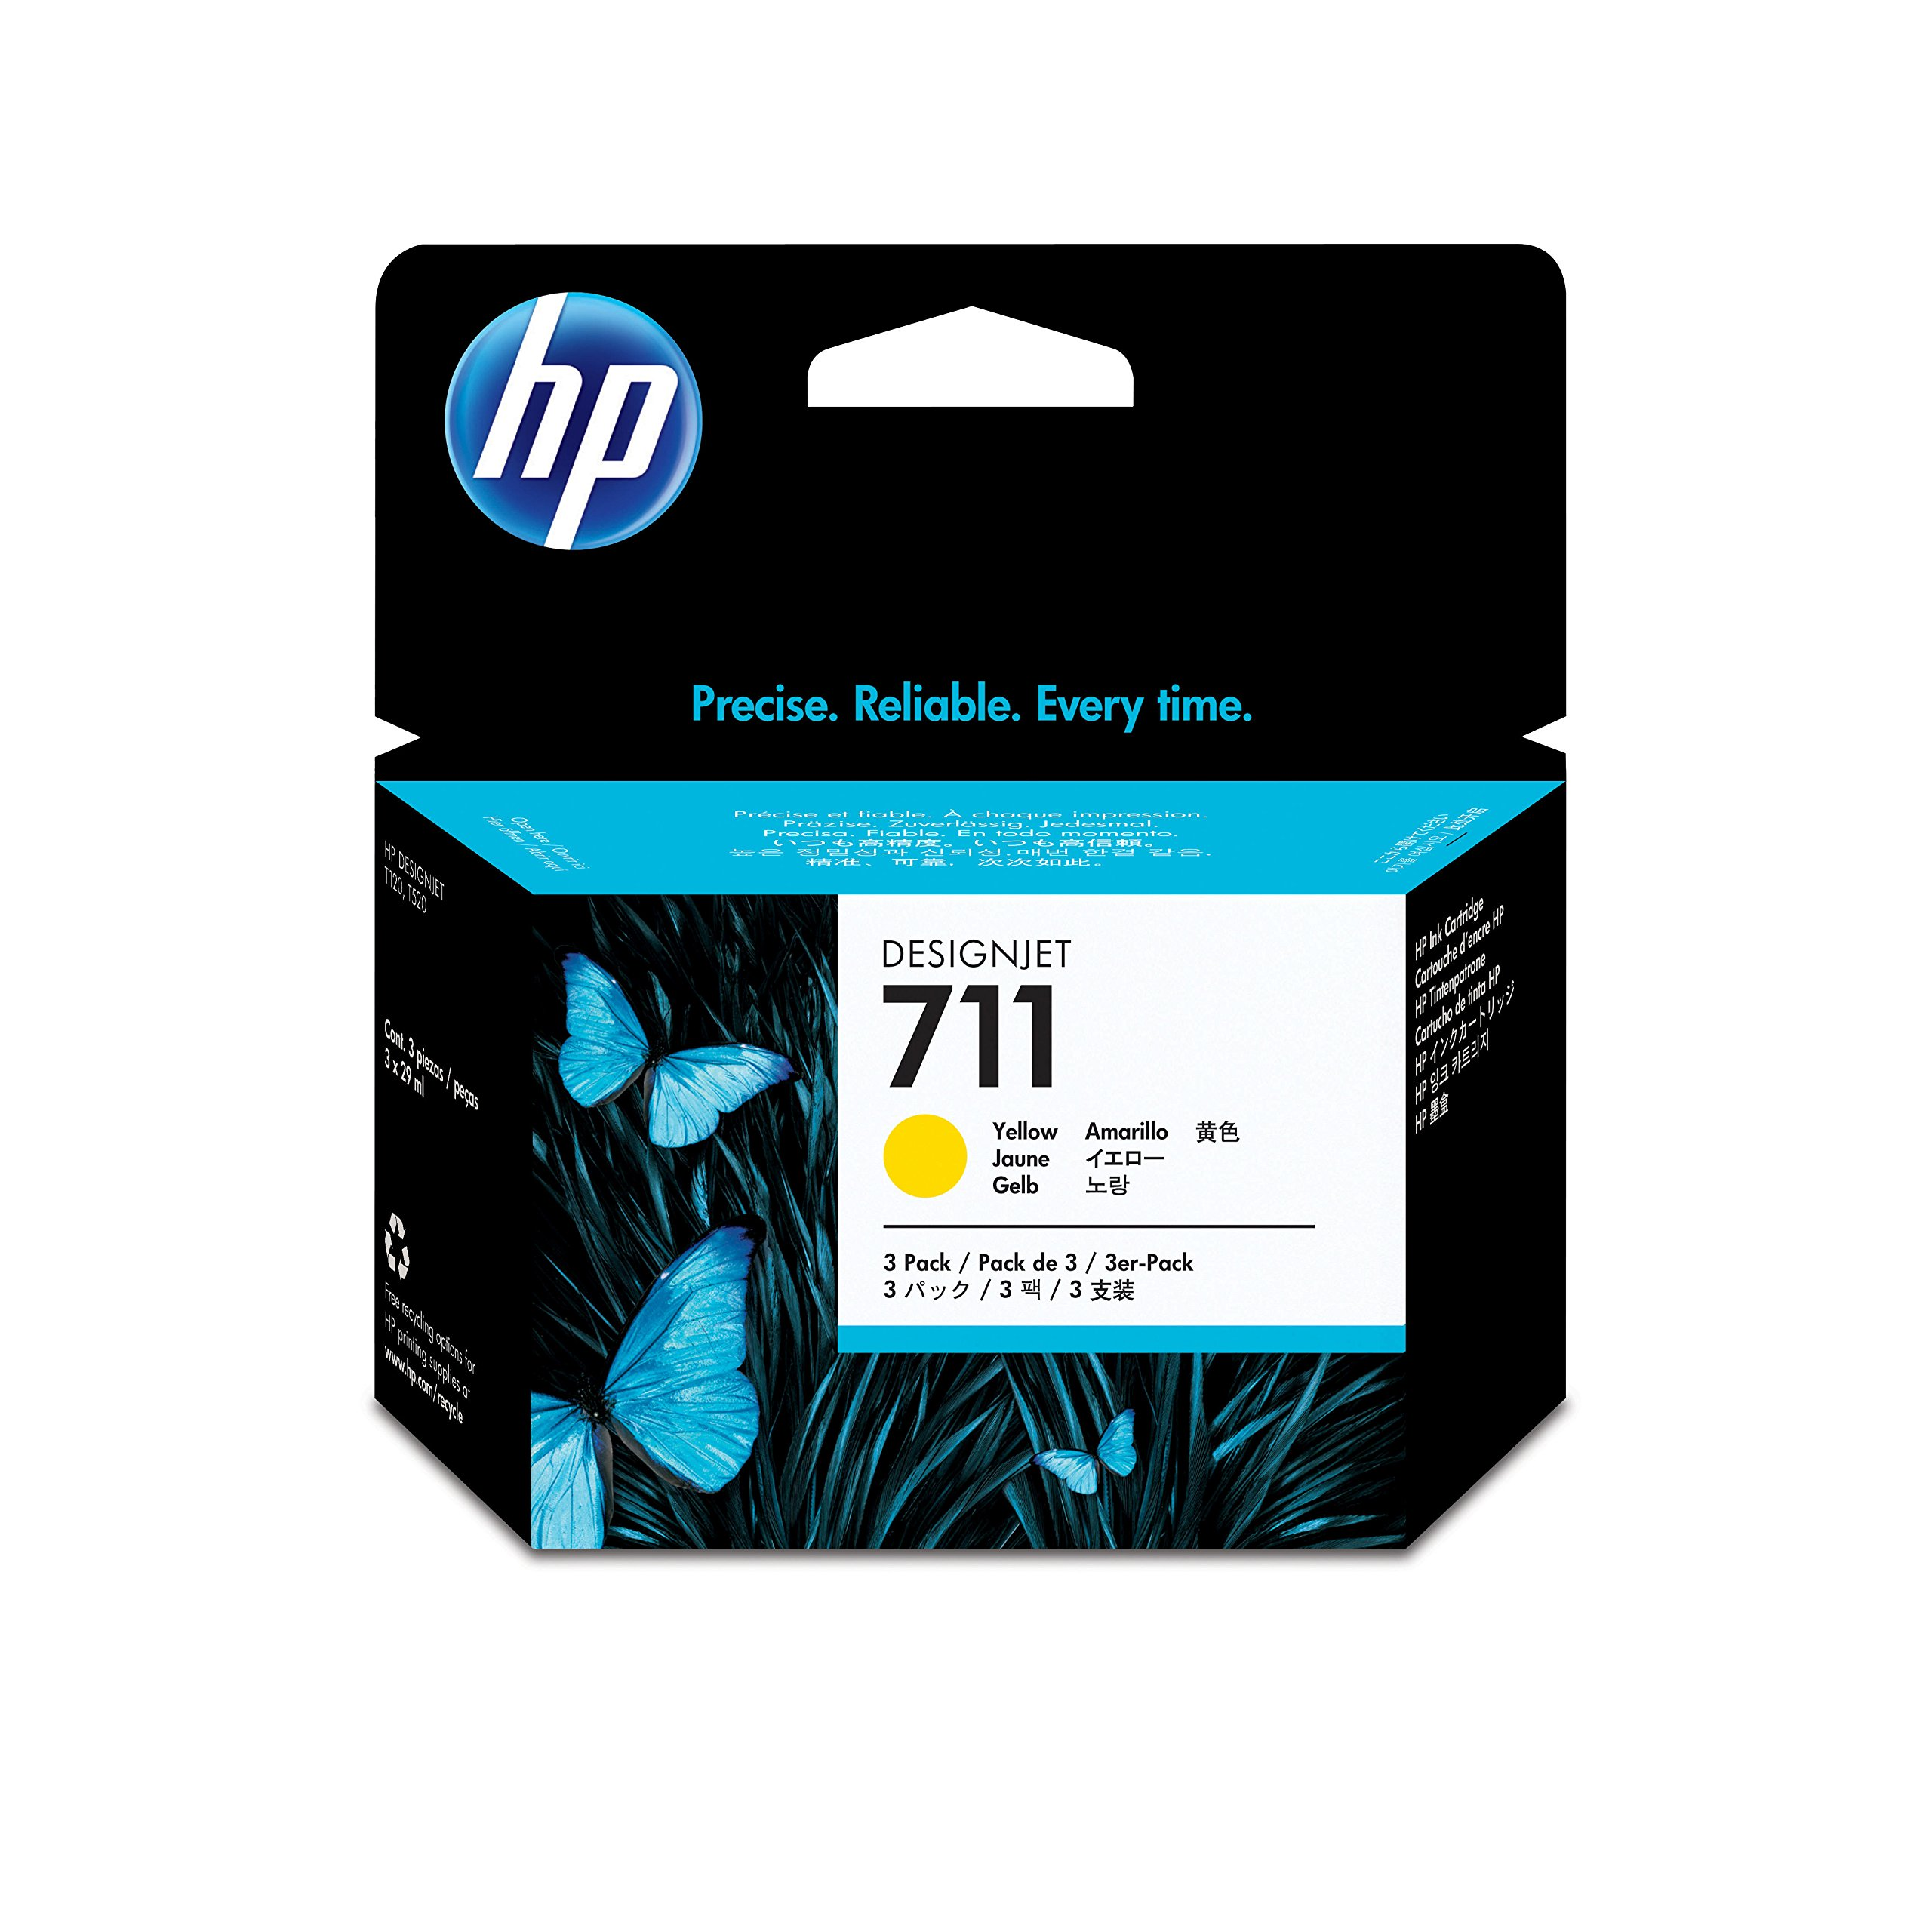 HP CZ136A - Pack de 3 cartuchos de tinta: Amazon.es: Oficina y ...